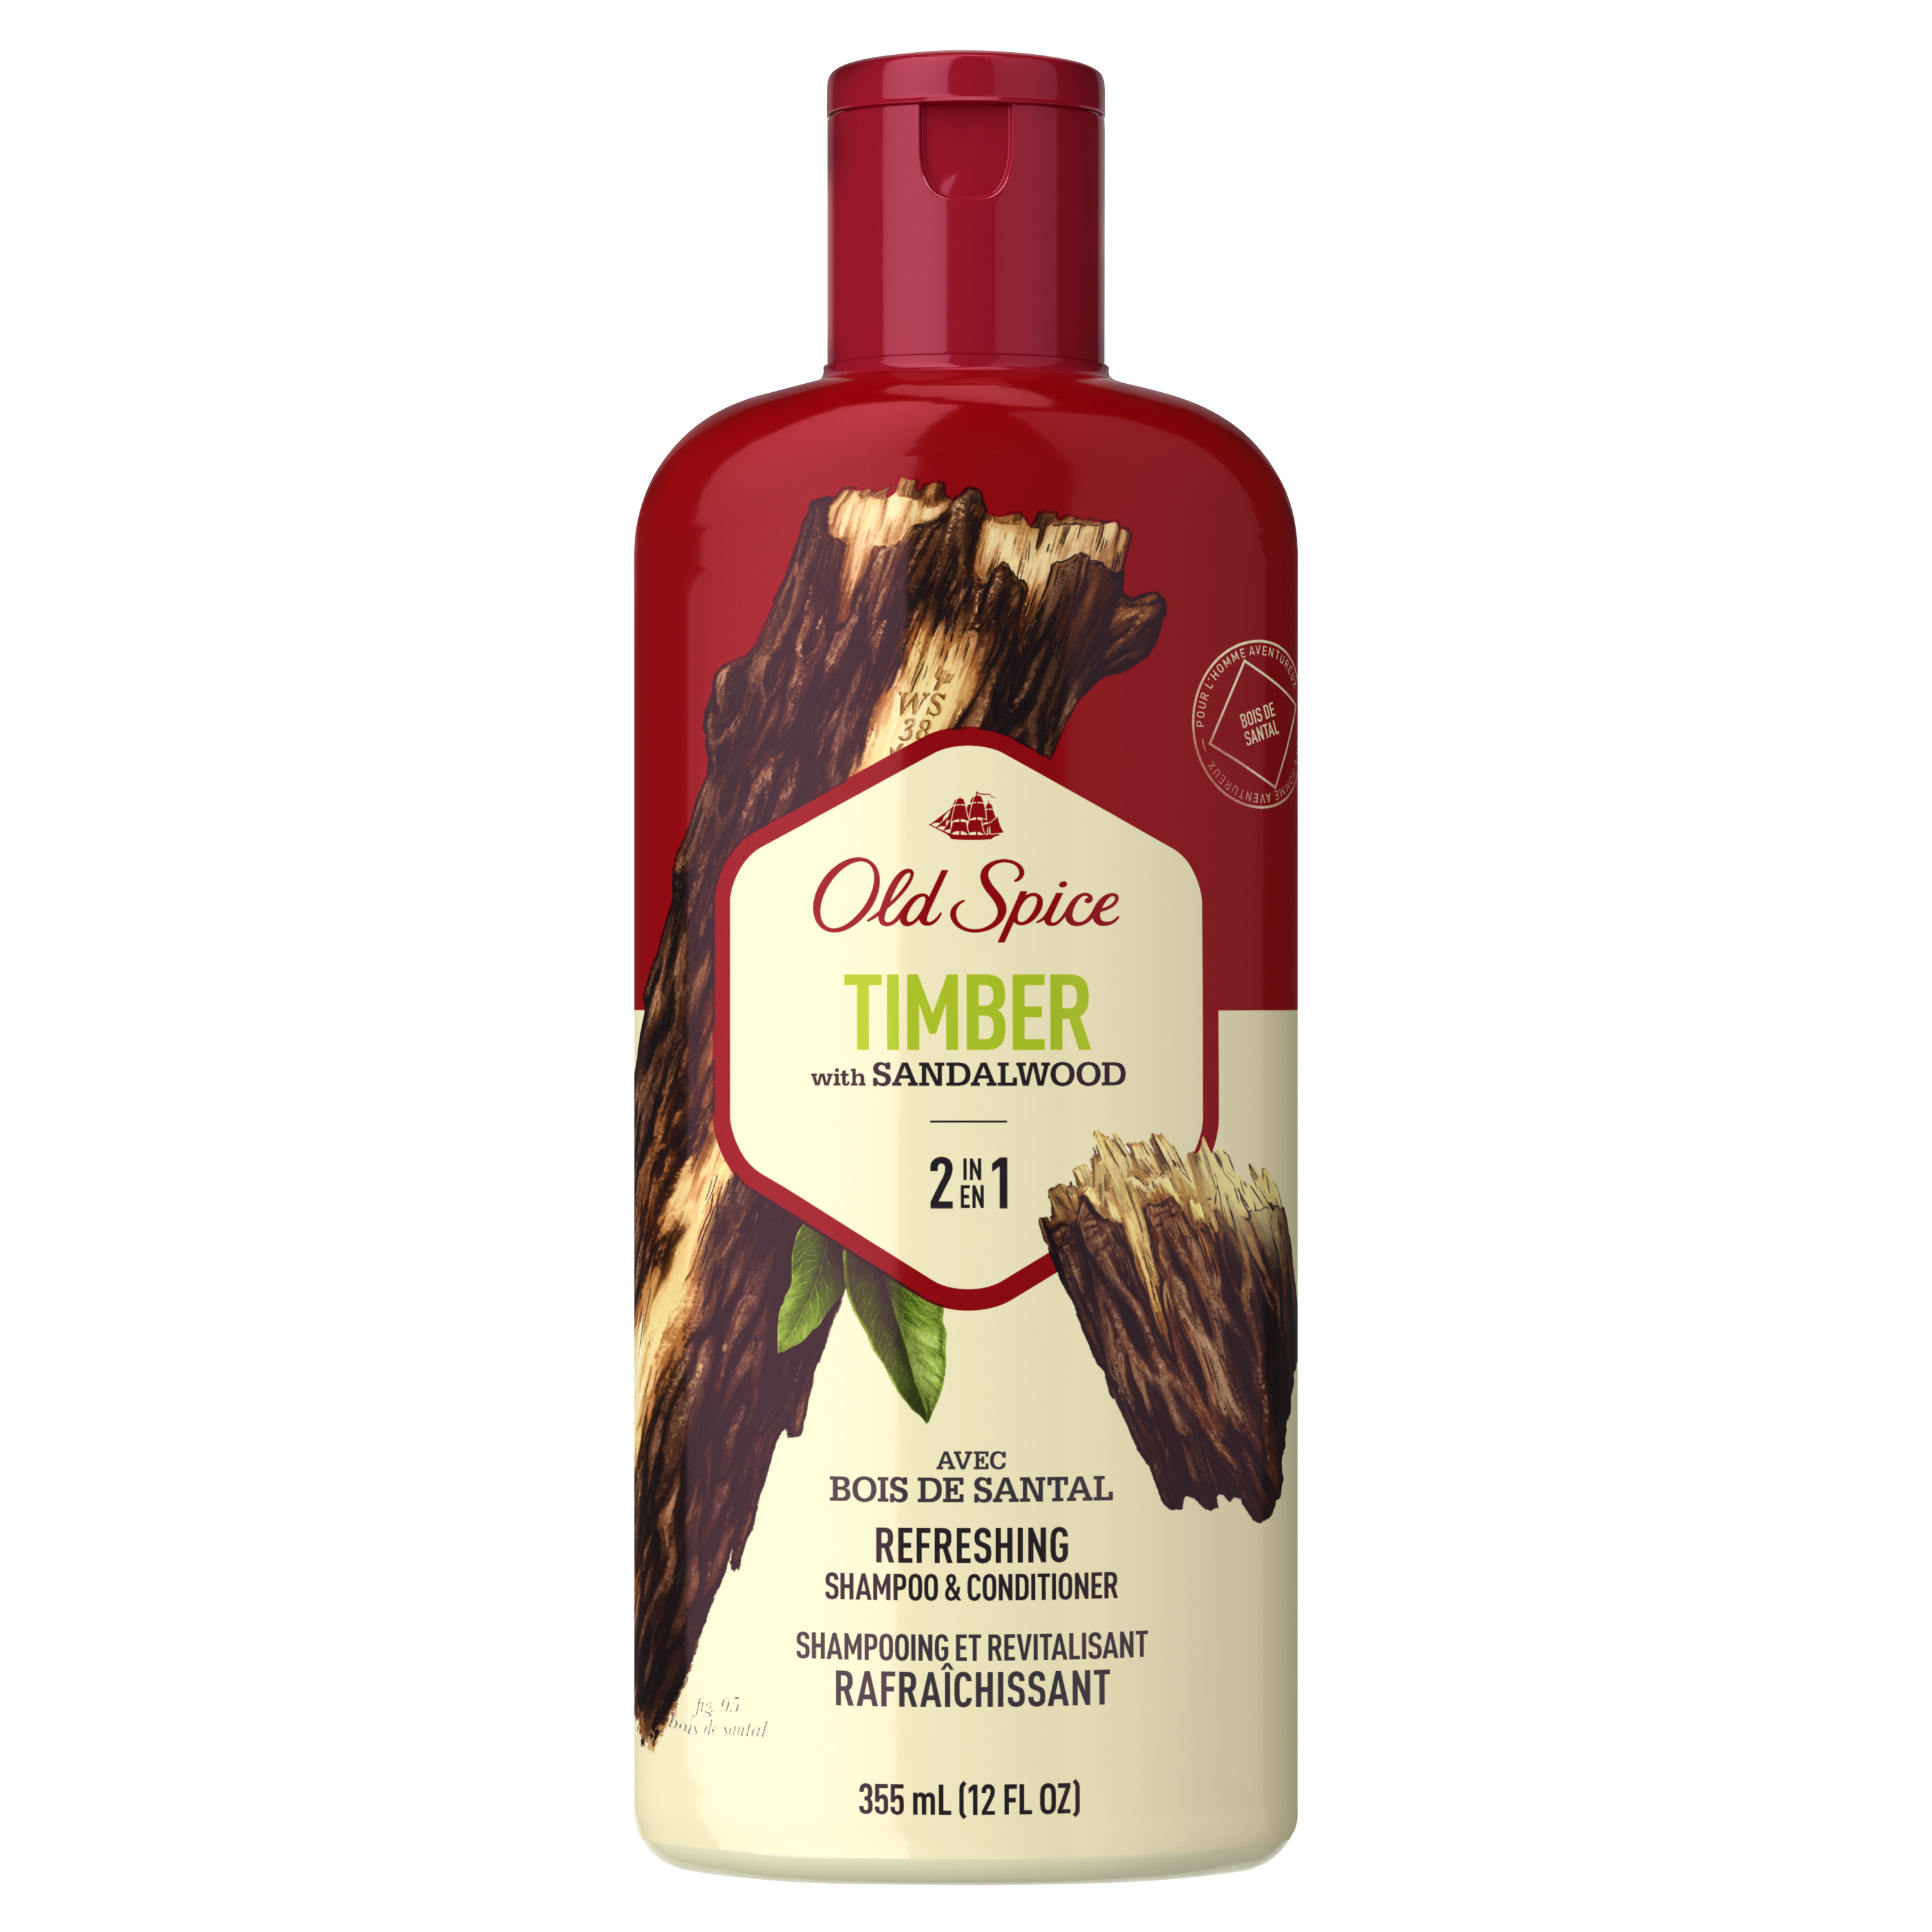 Old Spice Timber with Sandalwood Men's 2 in 1 Refreshing Shampoo & Conditioner, 12 fl oz